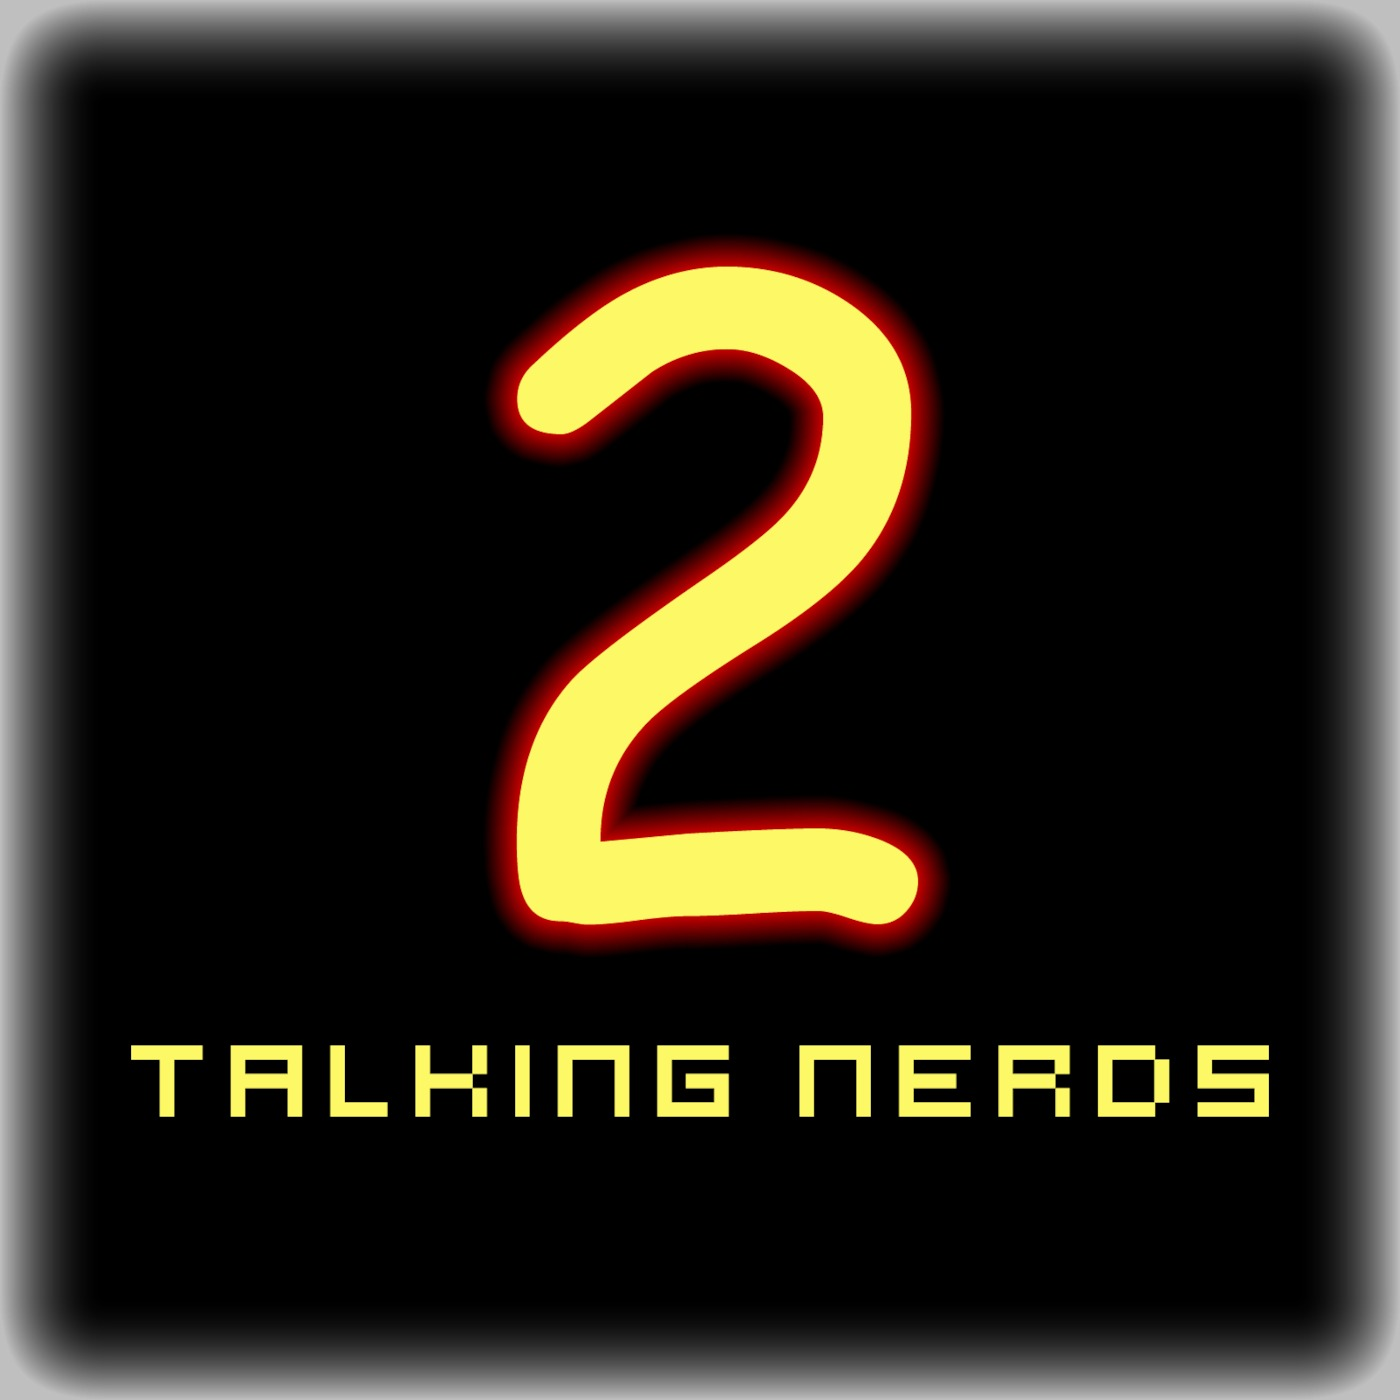 2 Talking Nerds